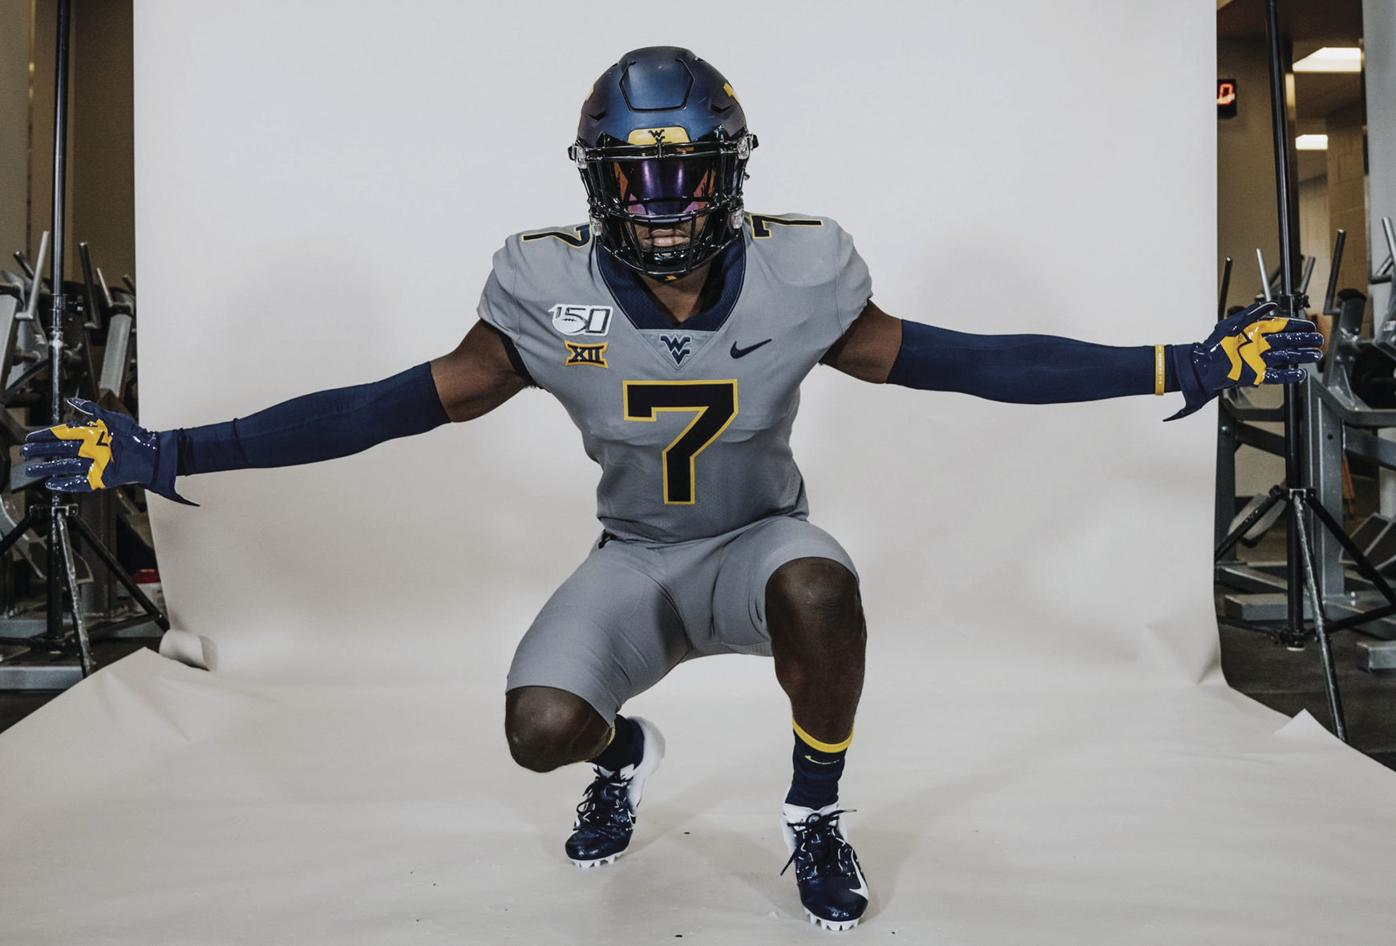 Wvu Football Welcomes New Players For The Spring Semester Wvnews Com